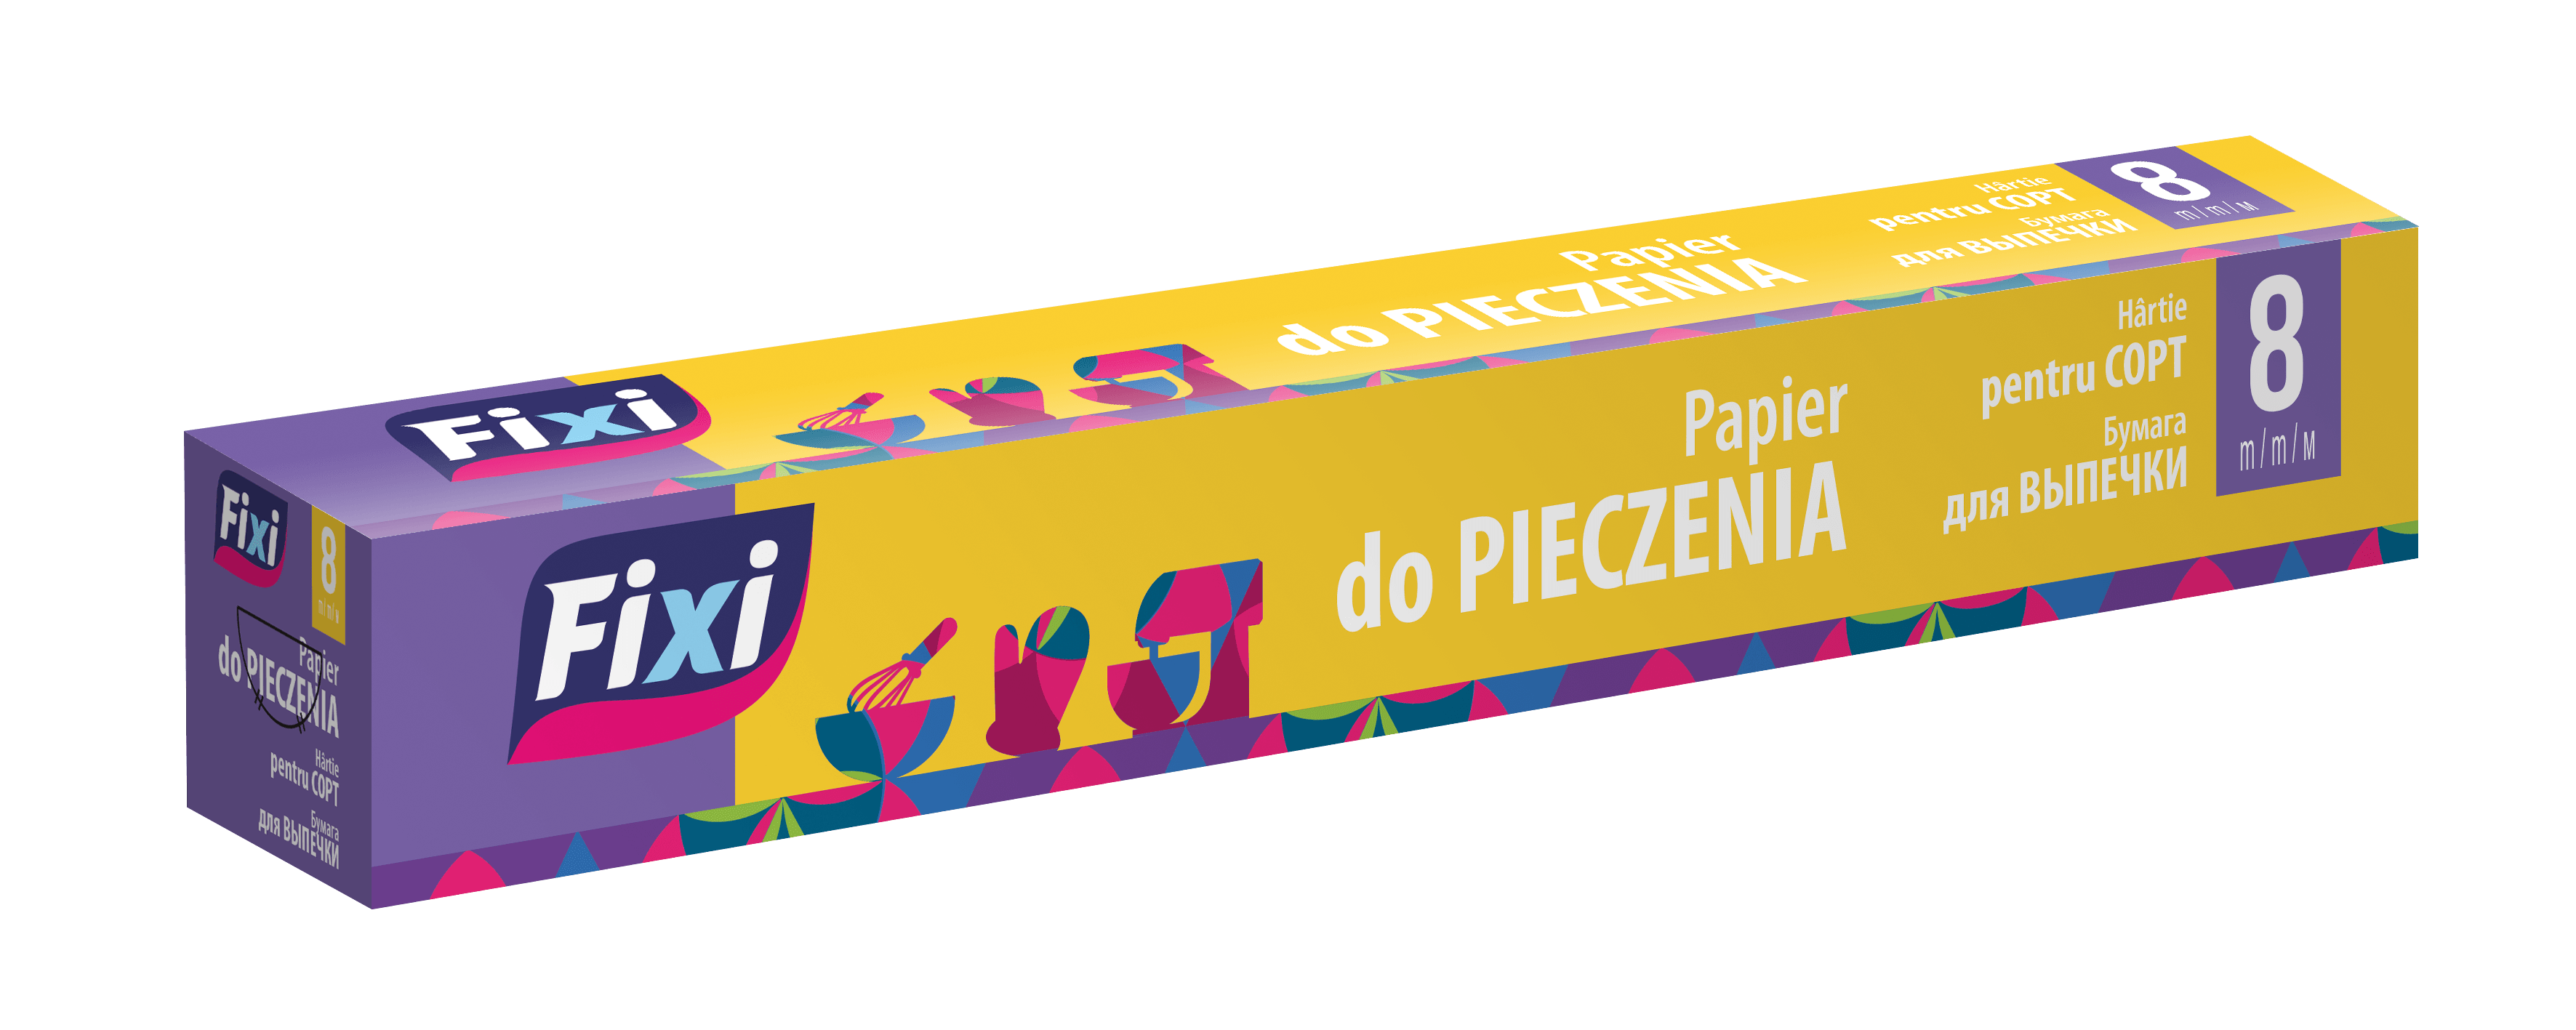 Papier do pieczenia 8m box FIXI